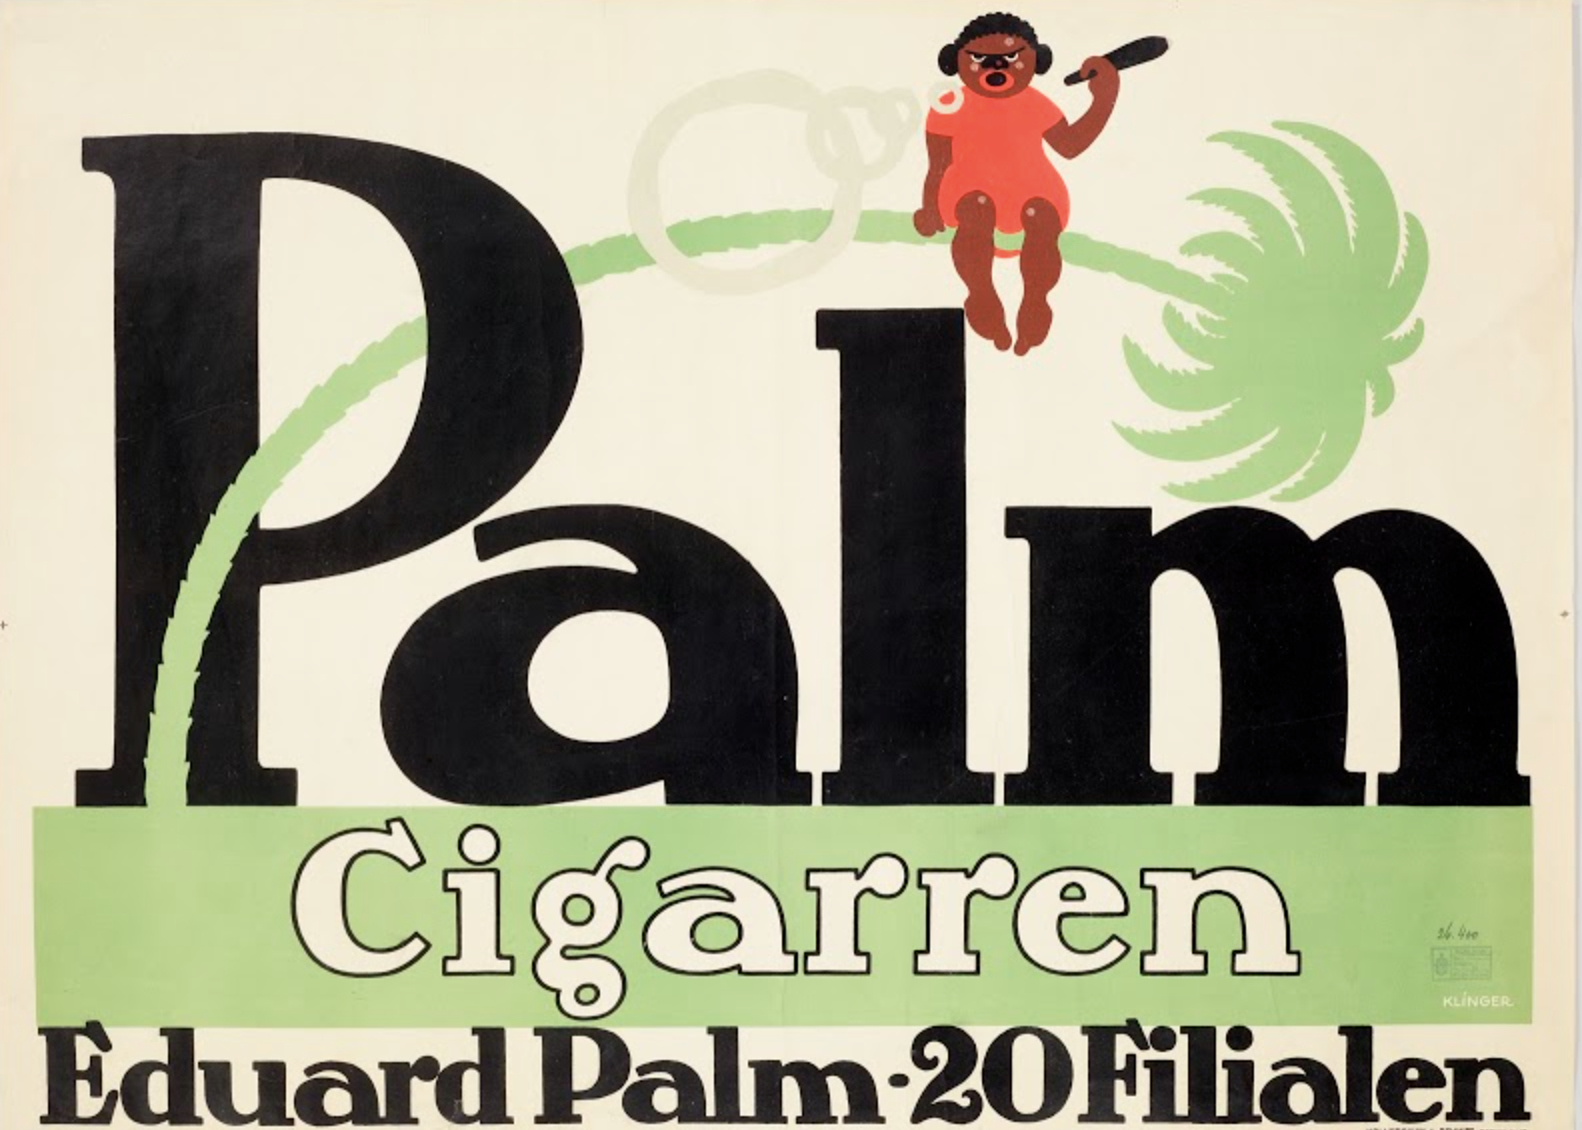 lithographic poster of a black figure sitting atop a bent palm tree smoking a cigar